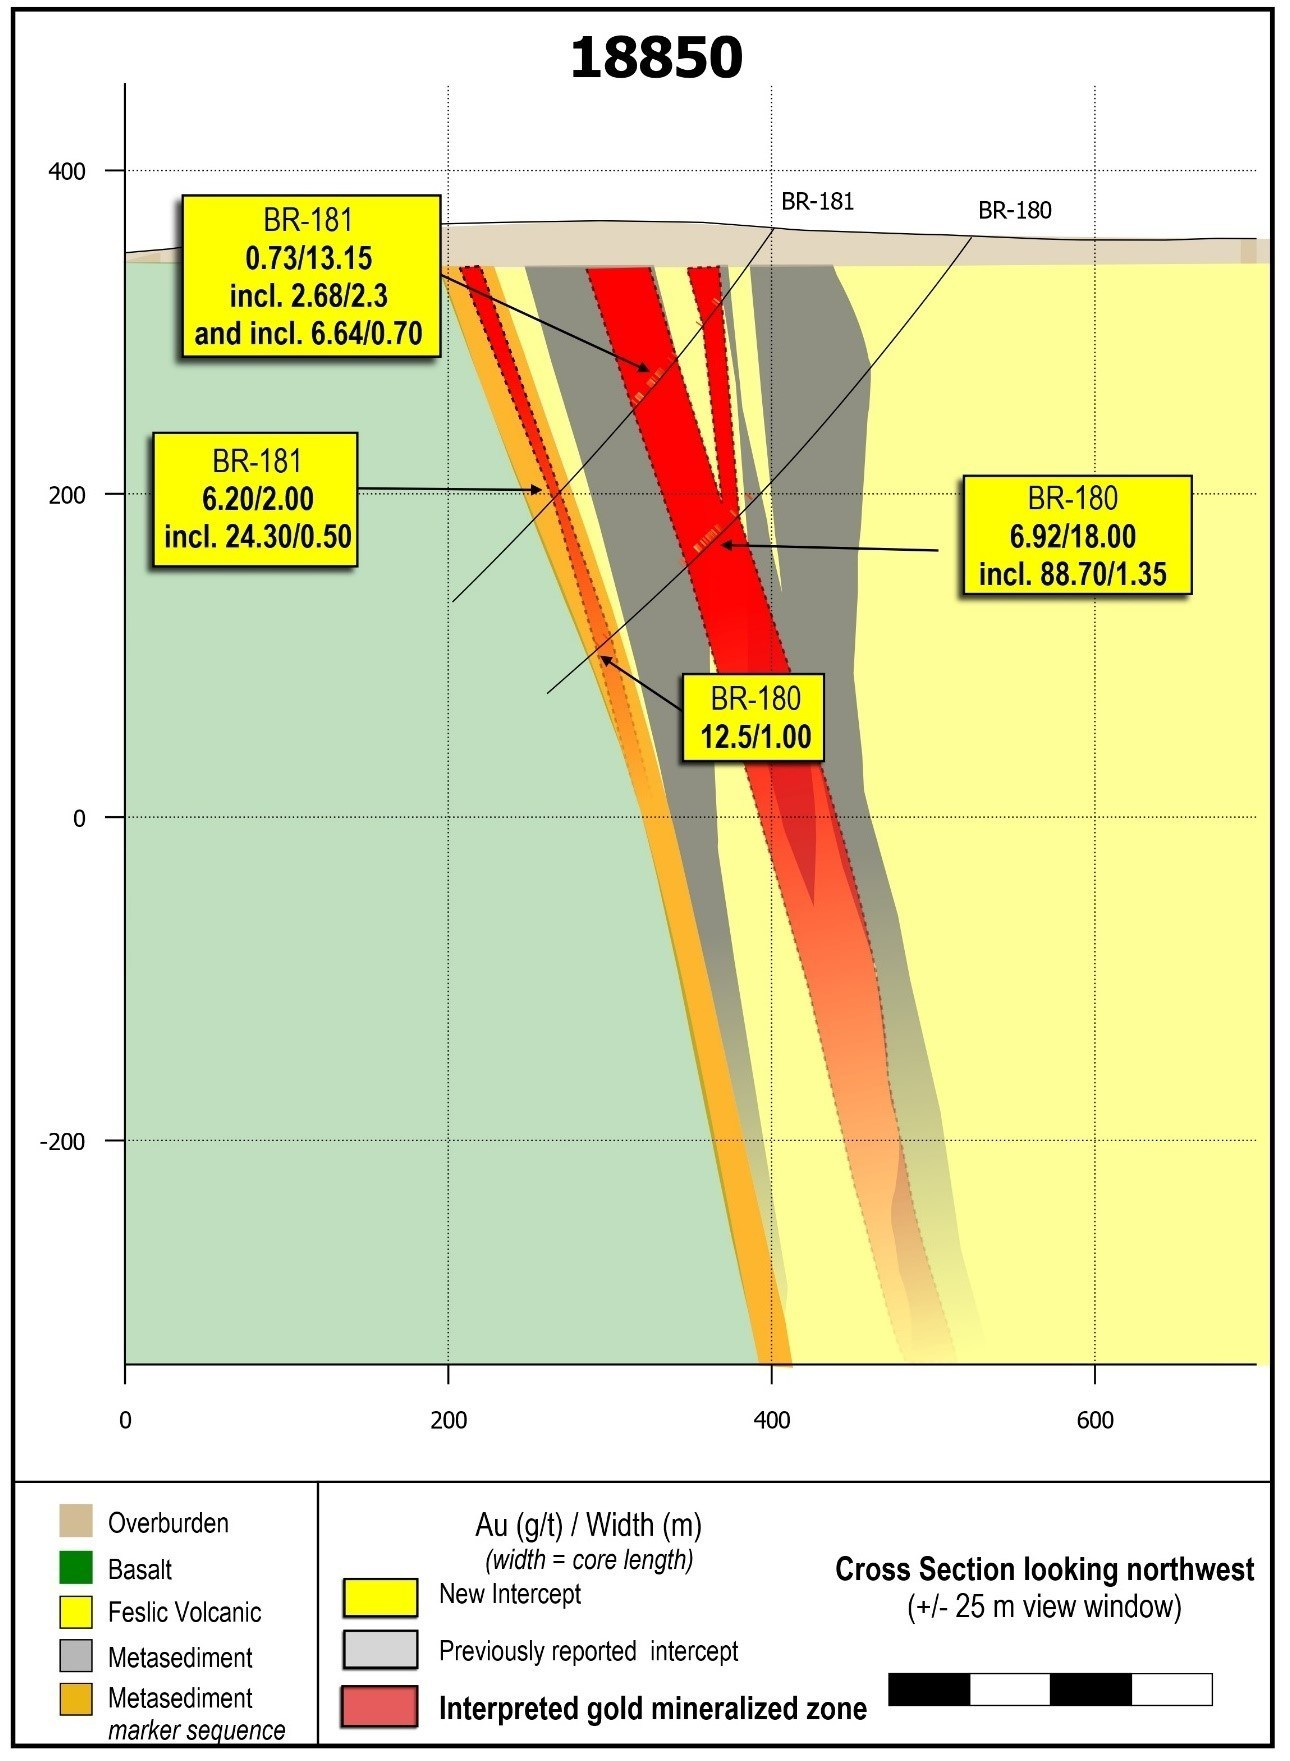 Figure 3: Drill section 18850 showing near-surface mineralization in drill hole BR-181 and high-grade mineralization in drill hole BR-180 assaying 88.70 g/t gold over 1.35 metres.  Results are from the sparsely drilled eastern  1.4 kilometres of the current grid drill program. (CNW Group/Great Bear Resources Ltd.)